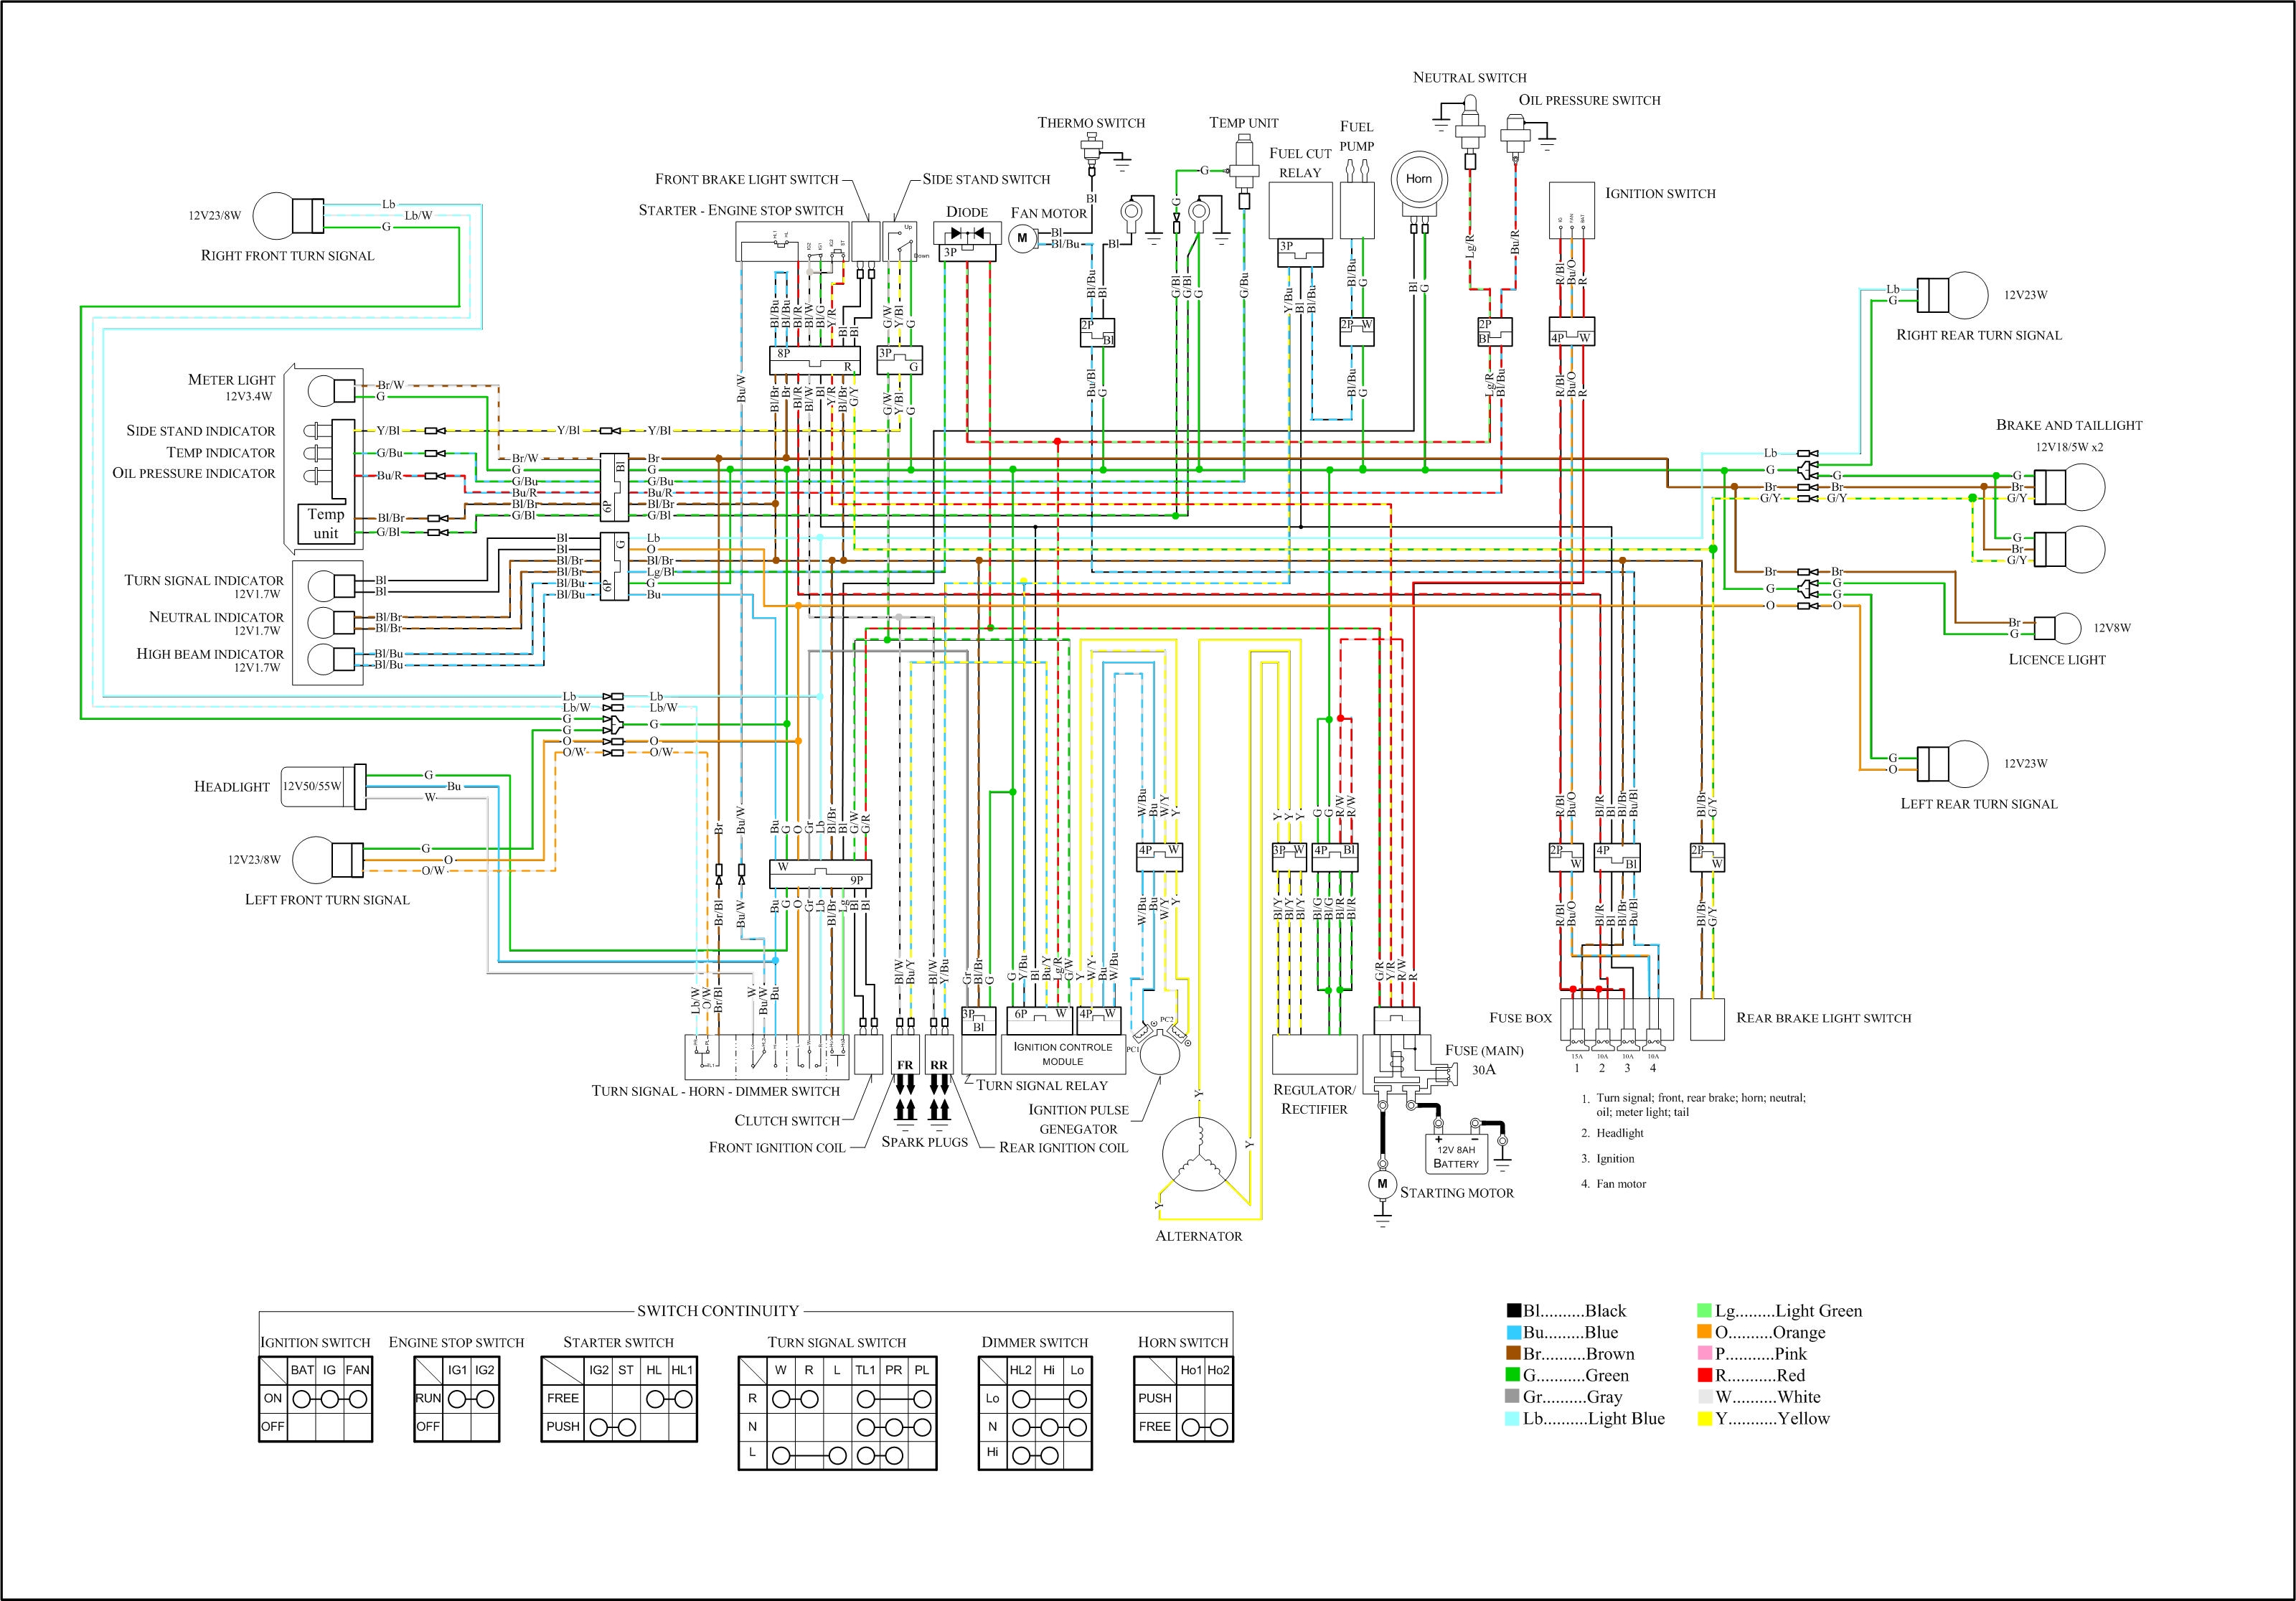 Easy Rider Wiring Diagram Free Download Wiring Diagram Schematic